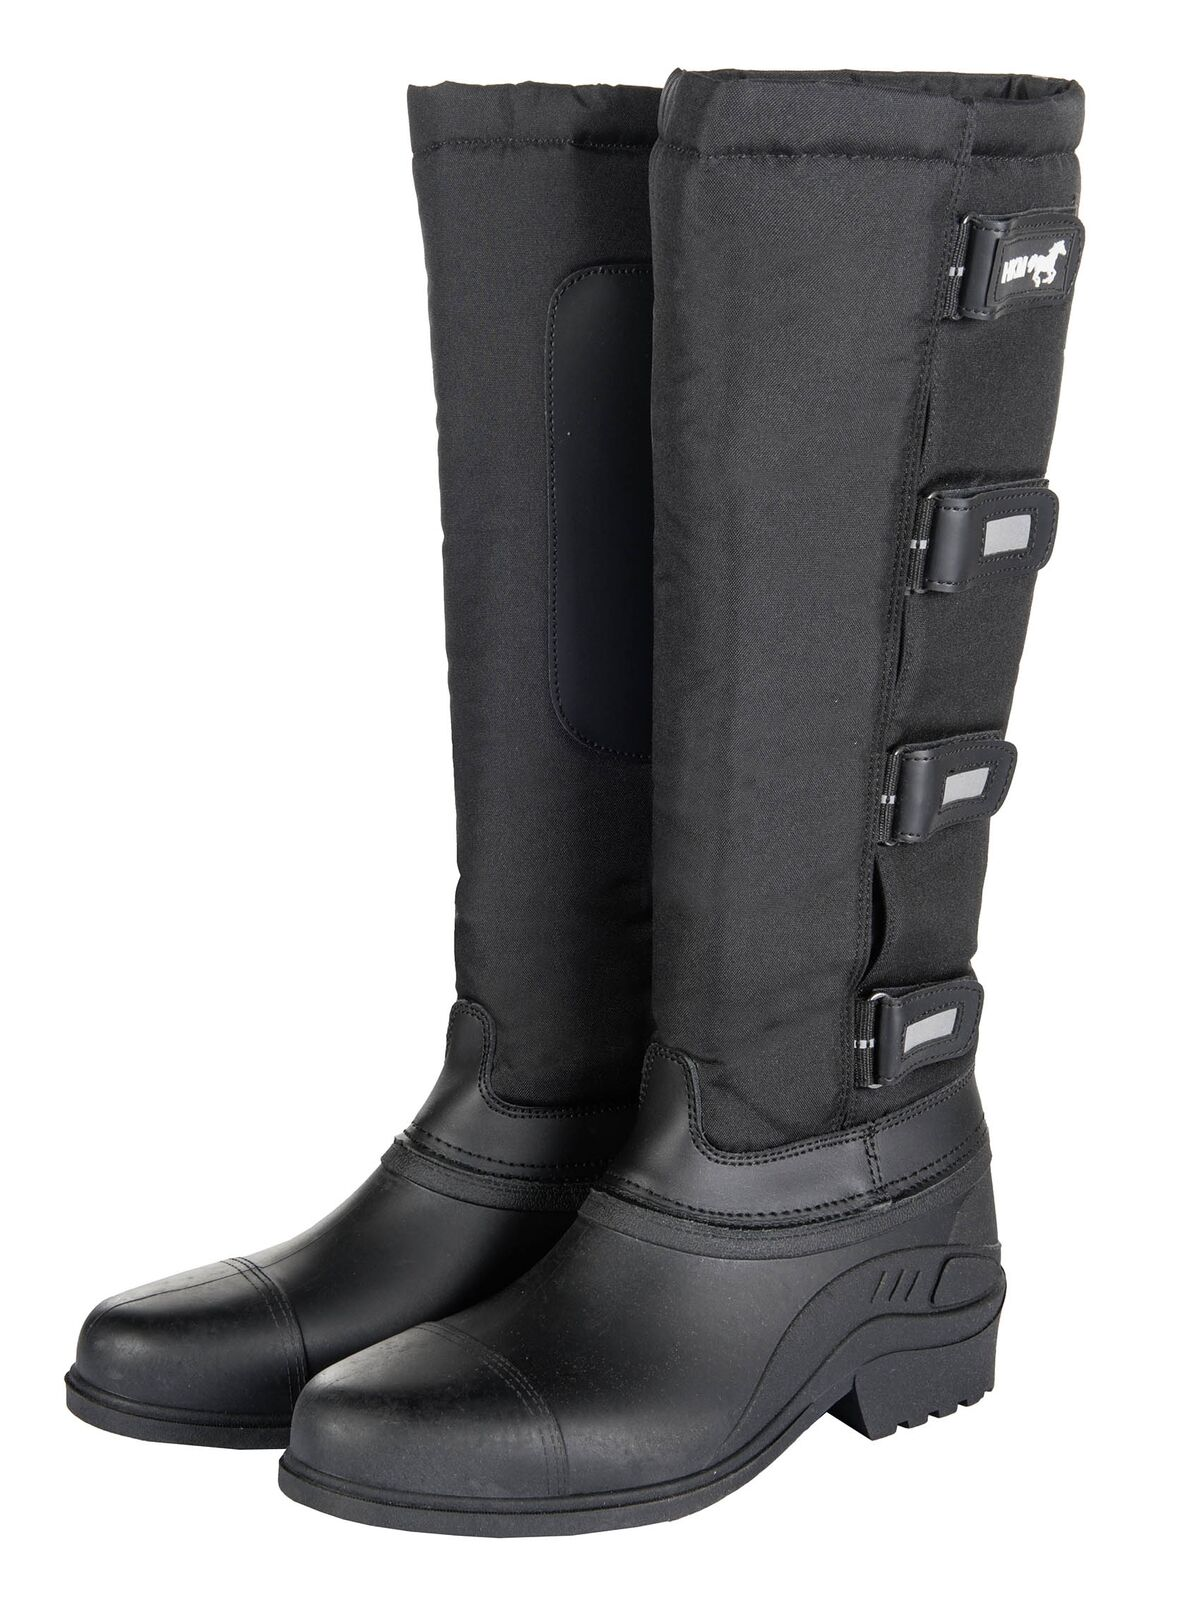 HKM Winter Thermo YARD STABLE BOOTS Robusta WARM & HIGHLY WATER RESISTANT ALL SI